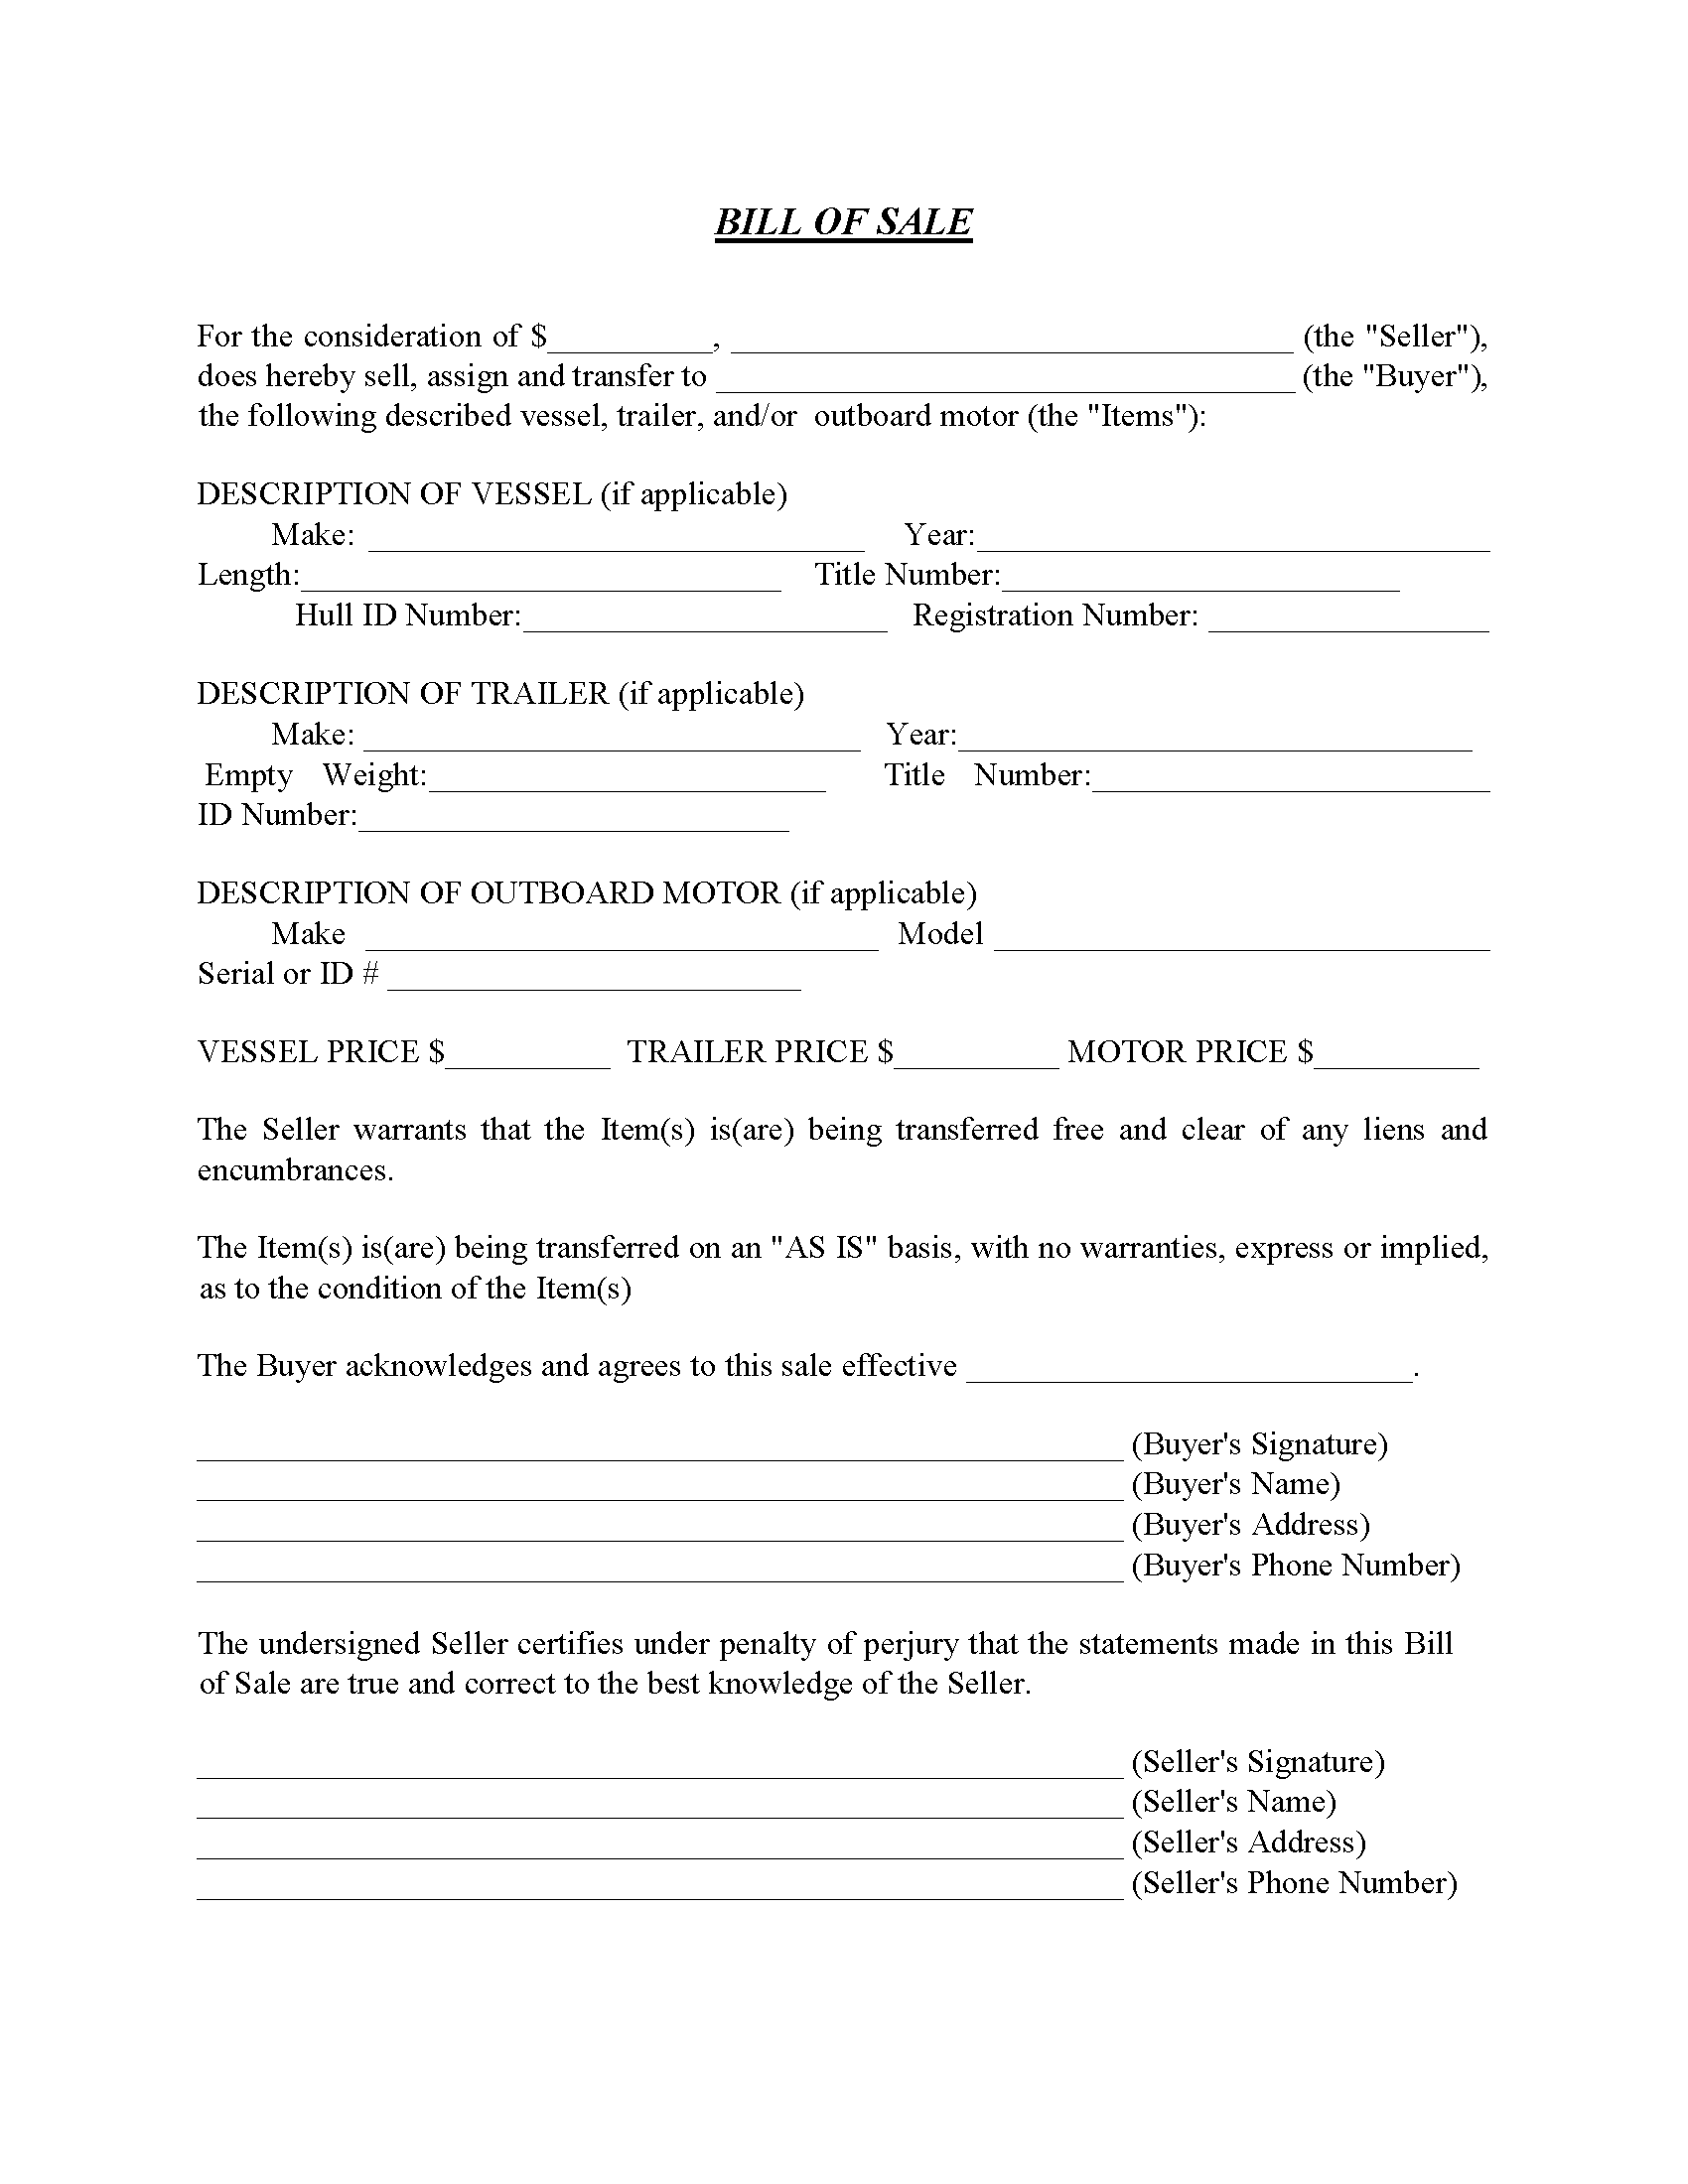 Georgia Boat Bill Of Sale Free Printable Legal Forms